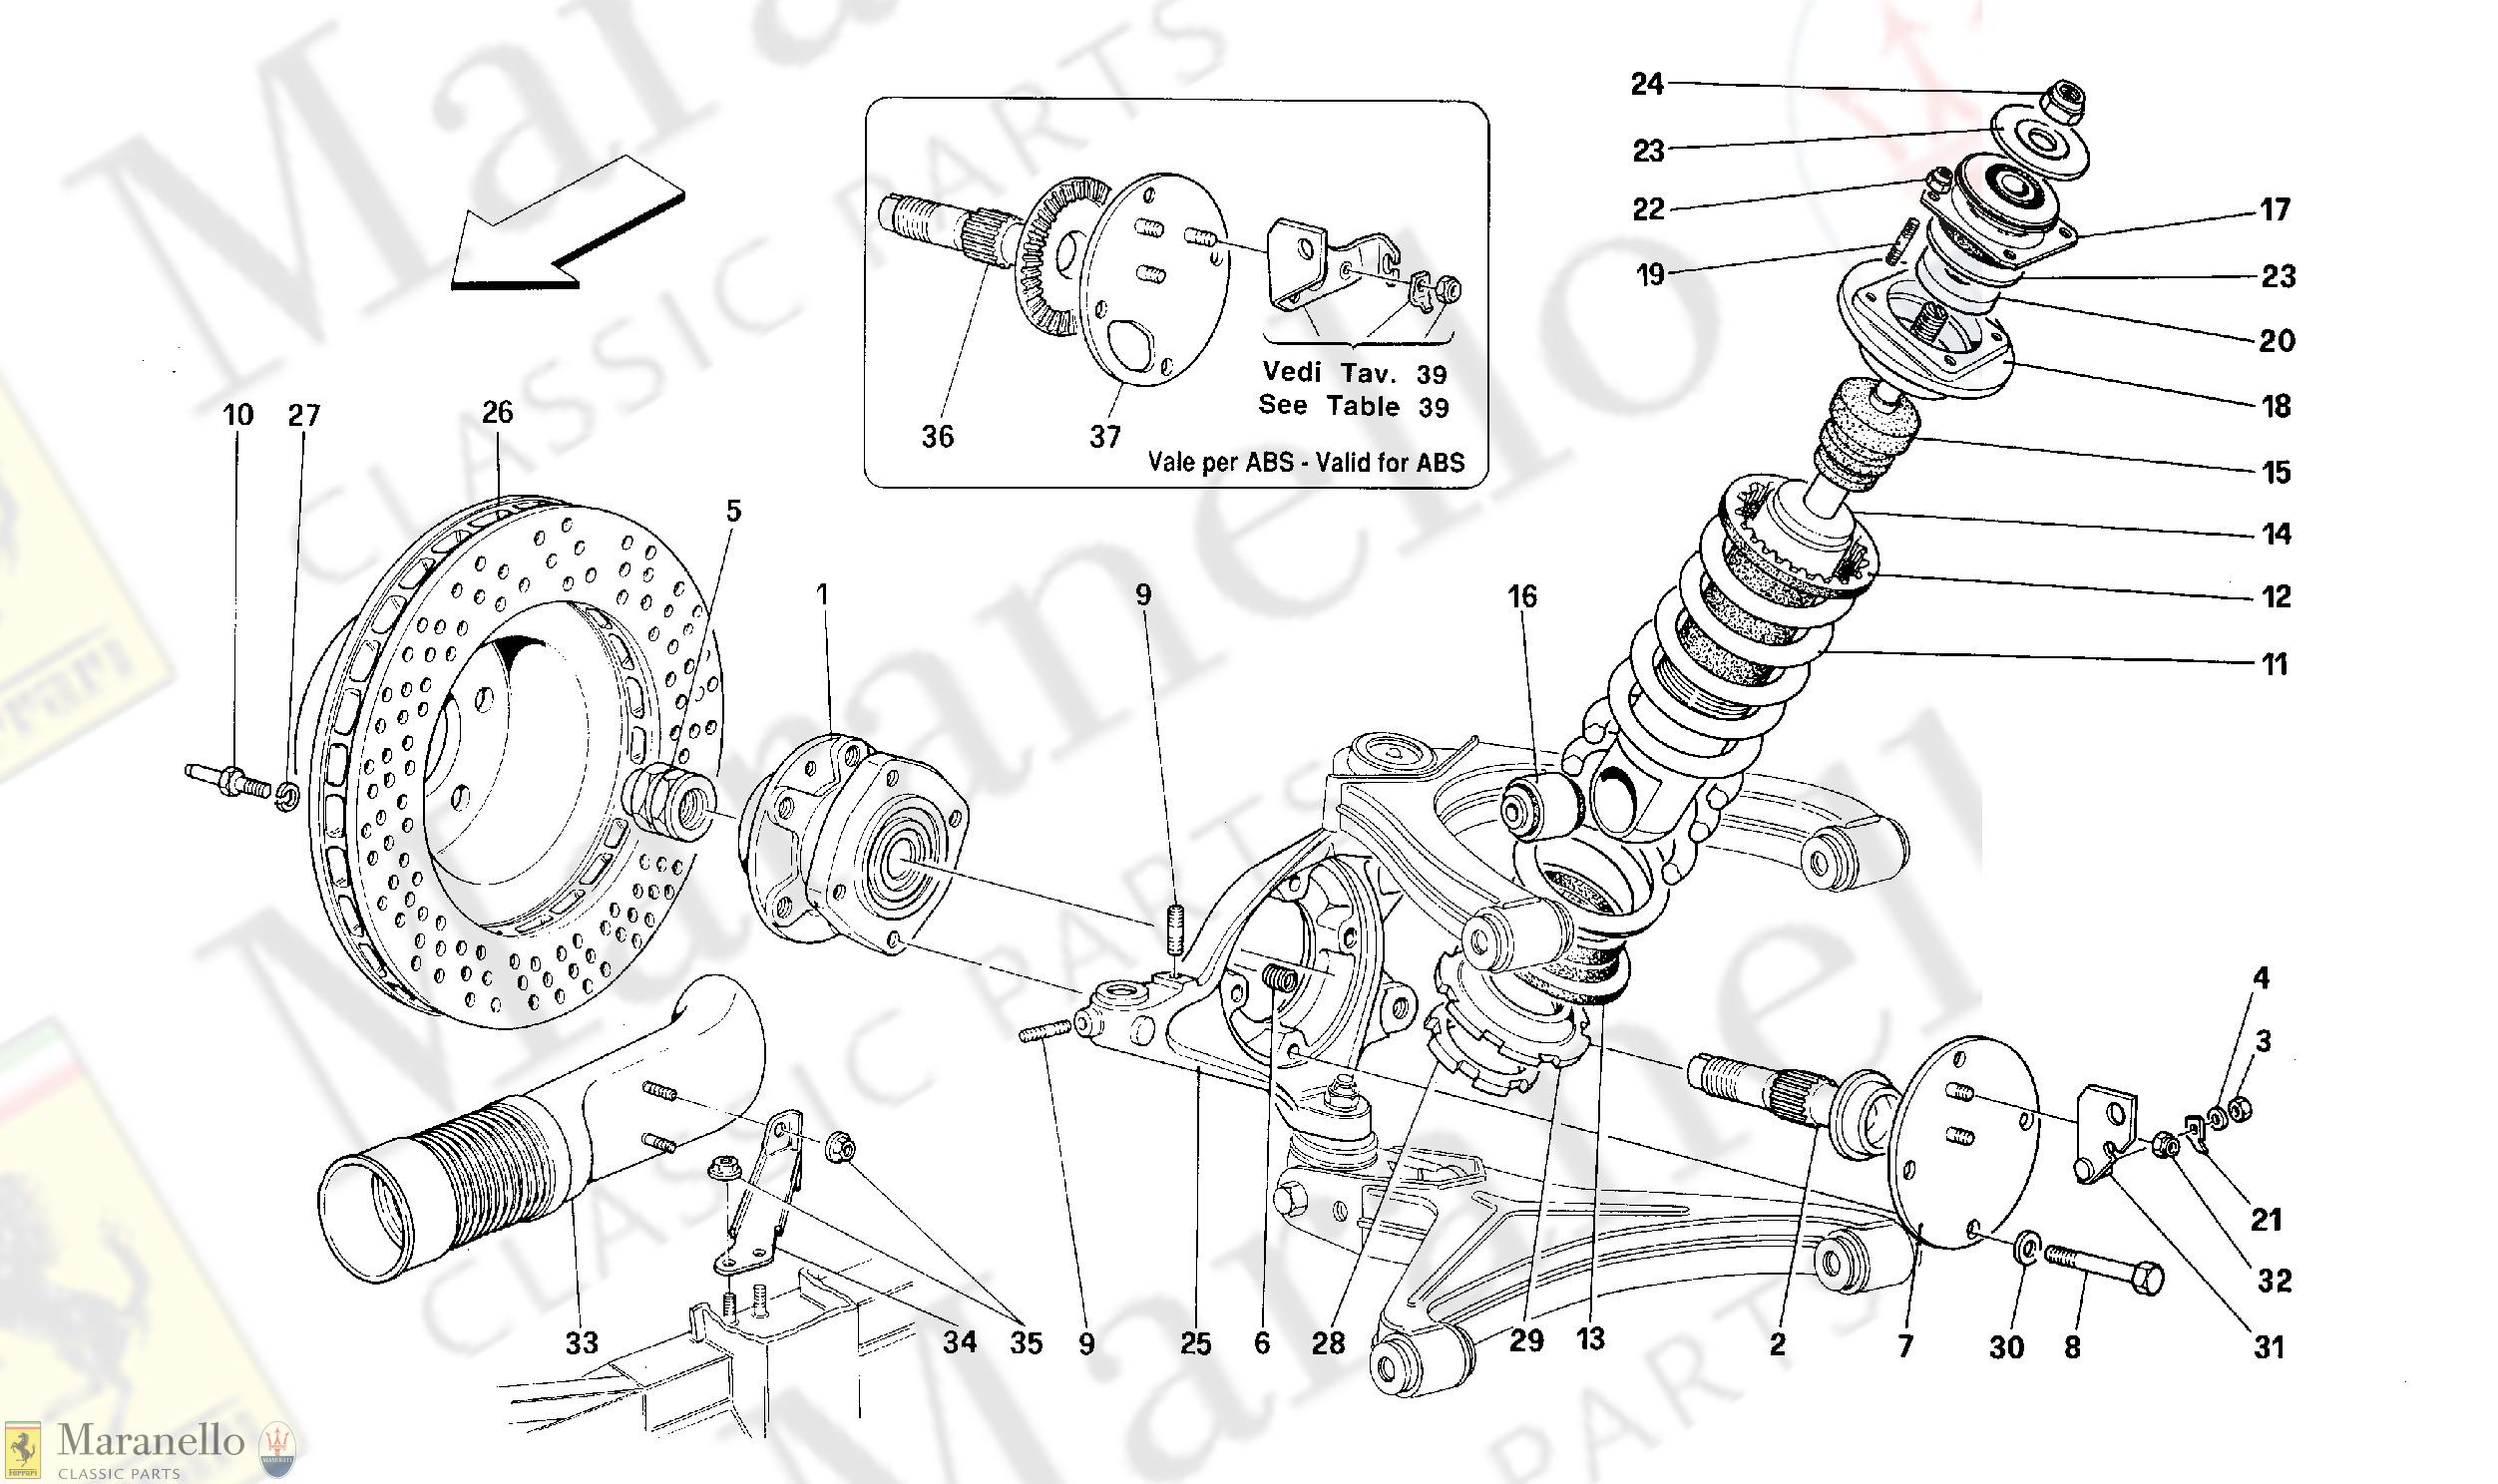 046 - Front Suspension - Shock Absorber And Brake Disc